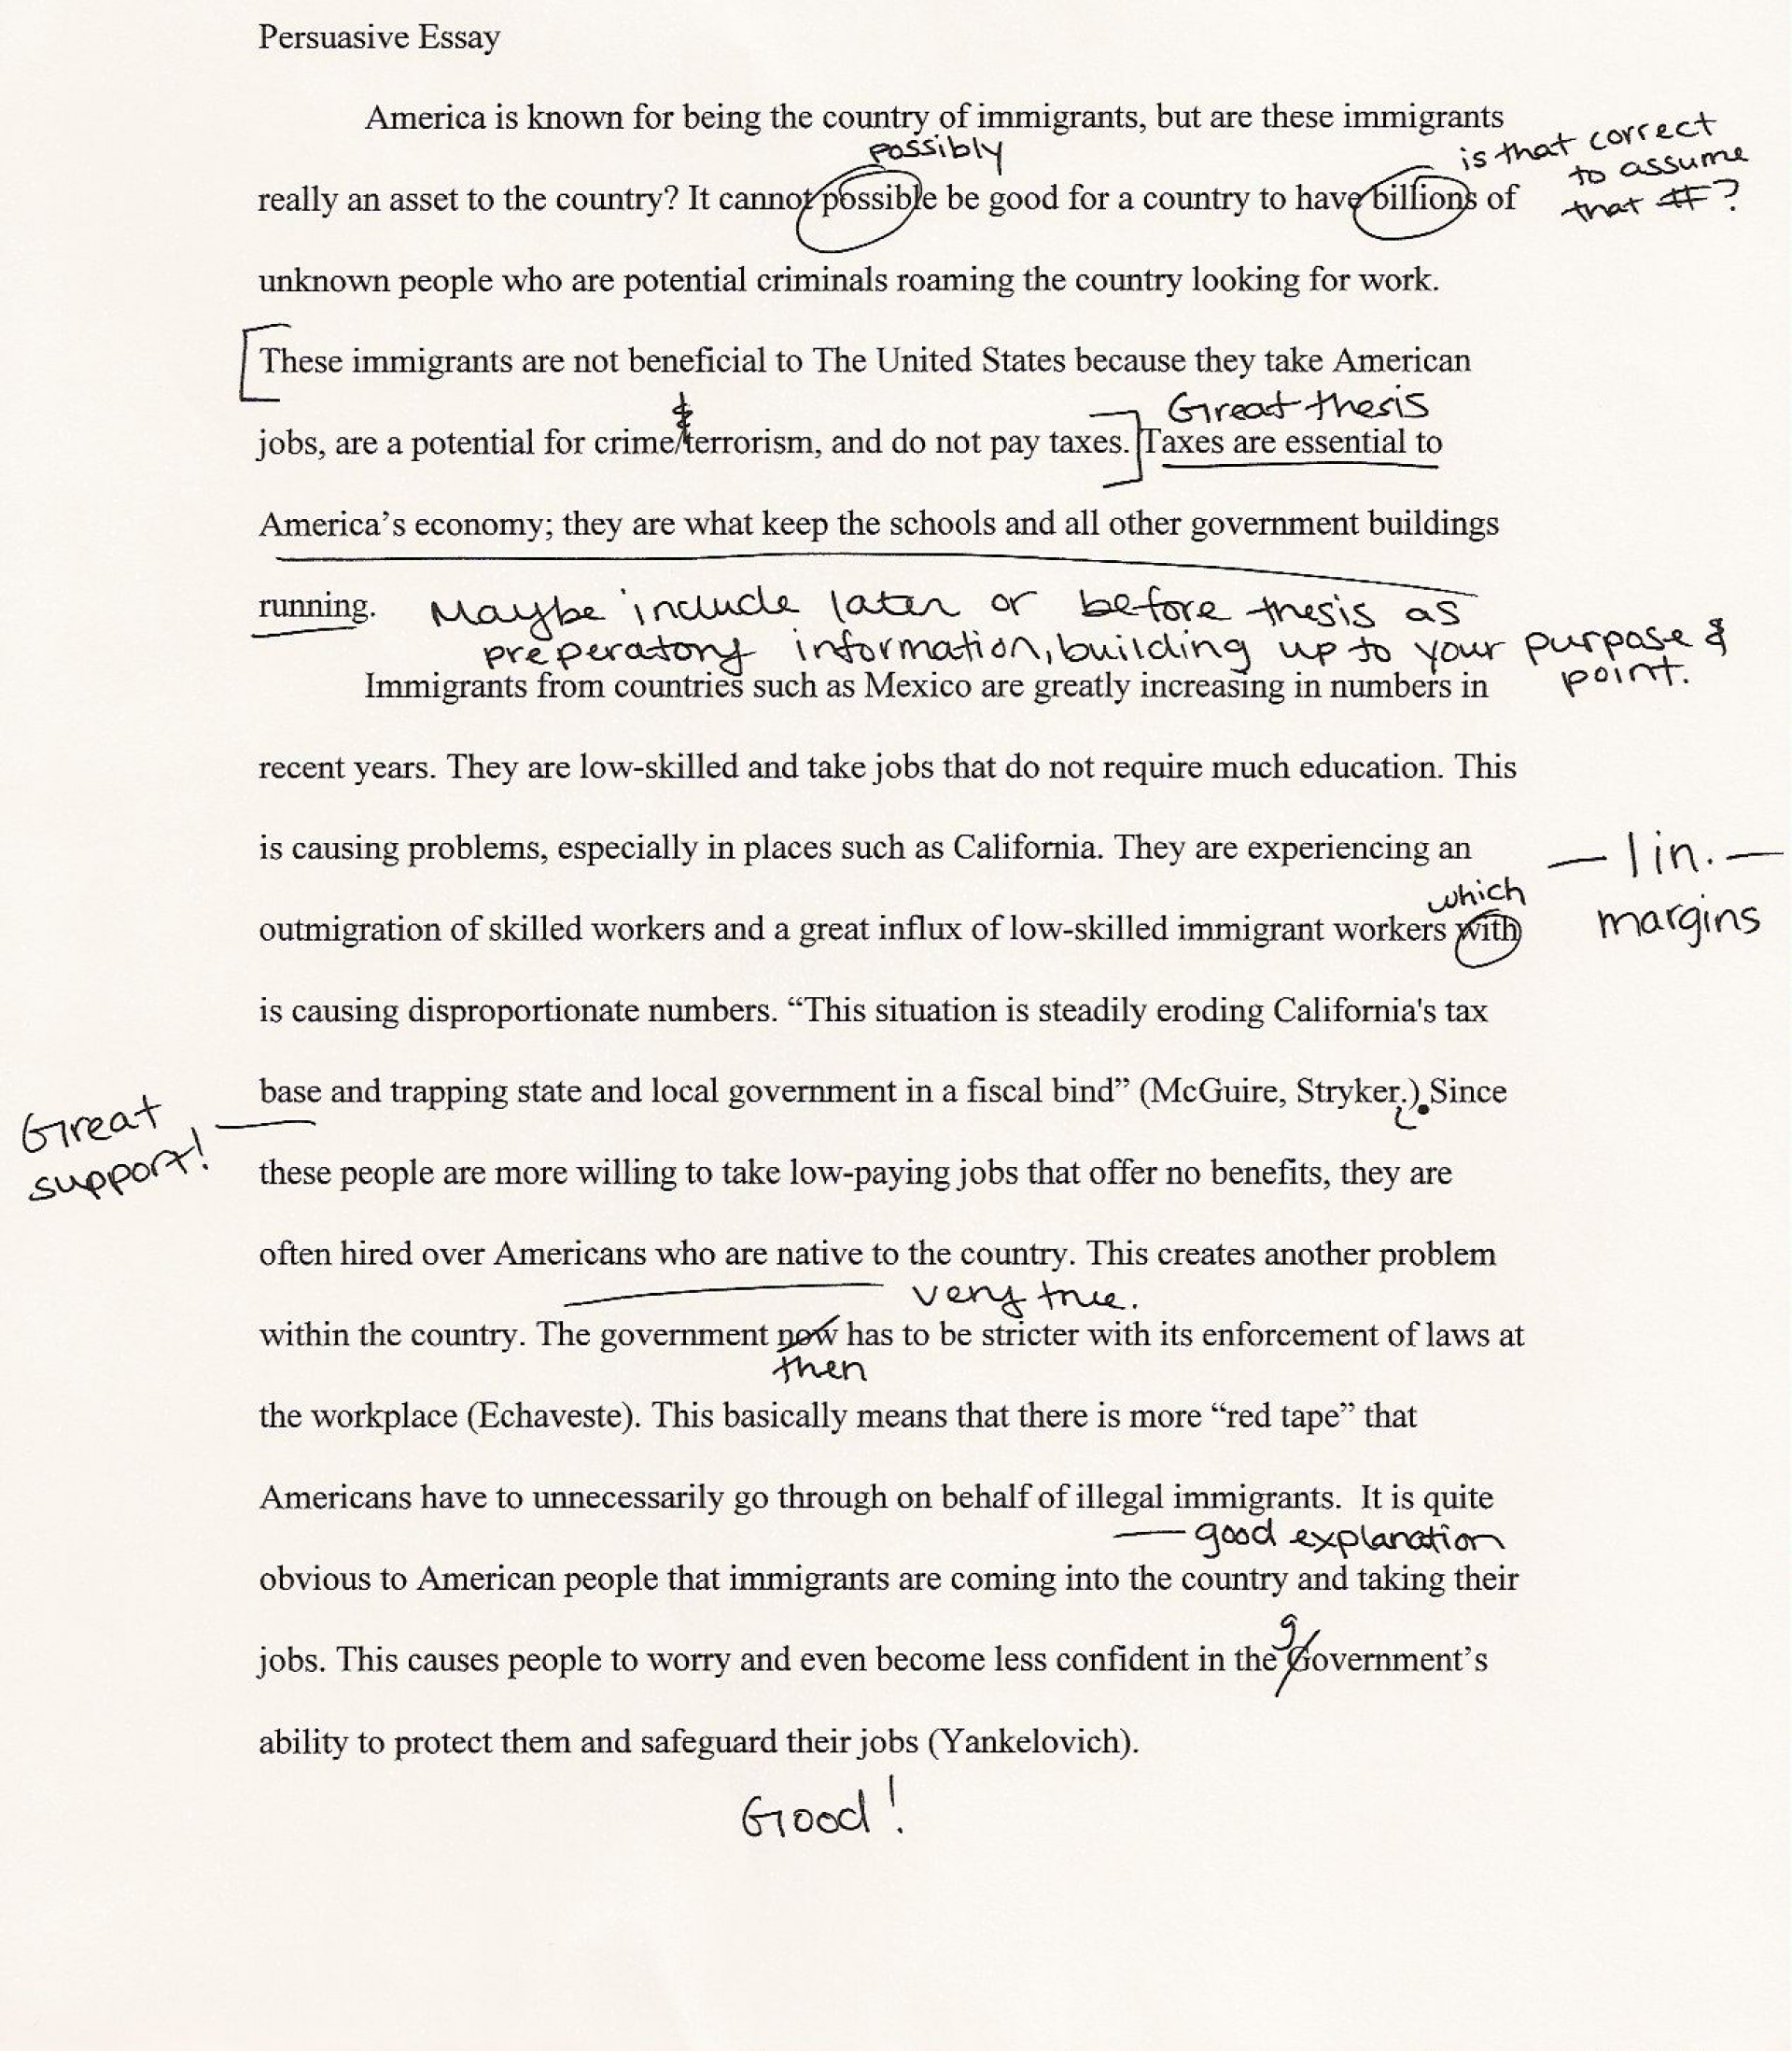 019 Research Paper Interesting Topics For Persuasive Wonderful A To Write On Argumentative 1920